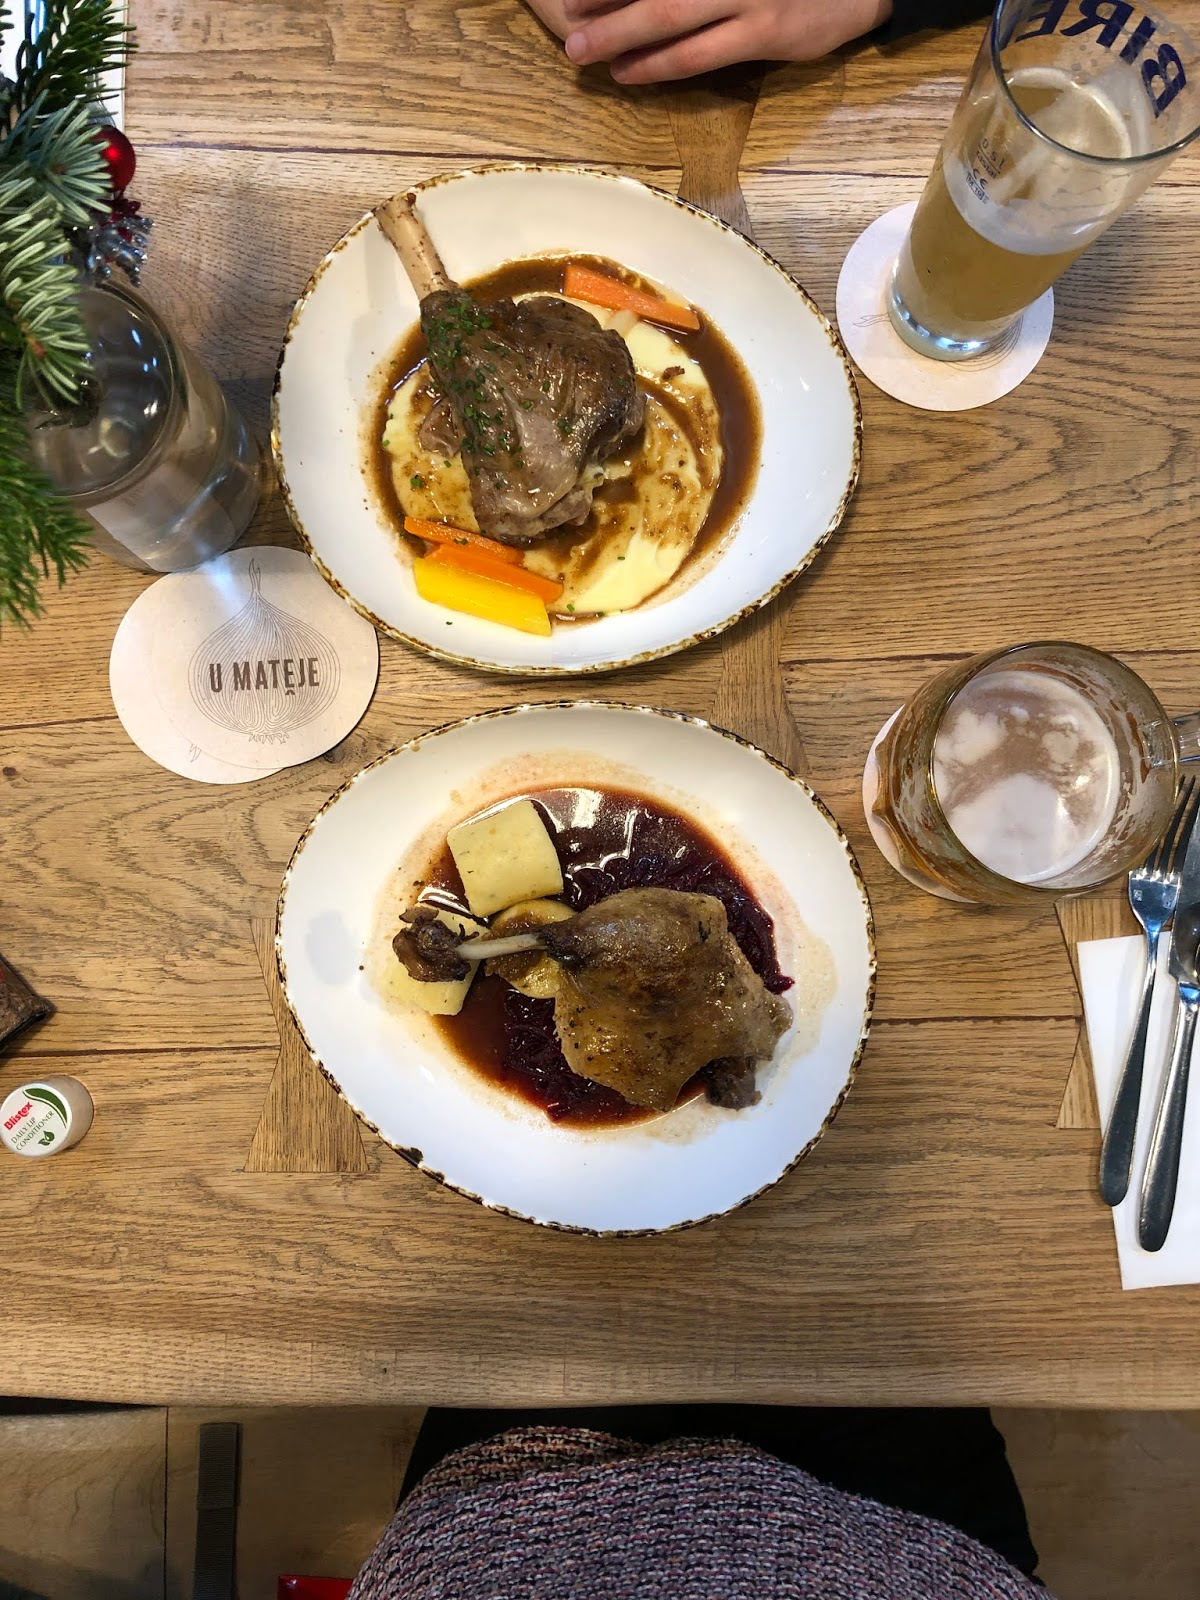 Prague Off The Beaten Track - Where to eat modern czech cuisine